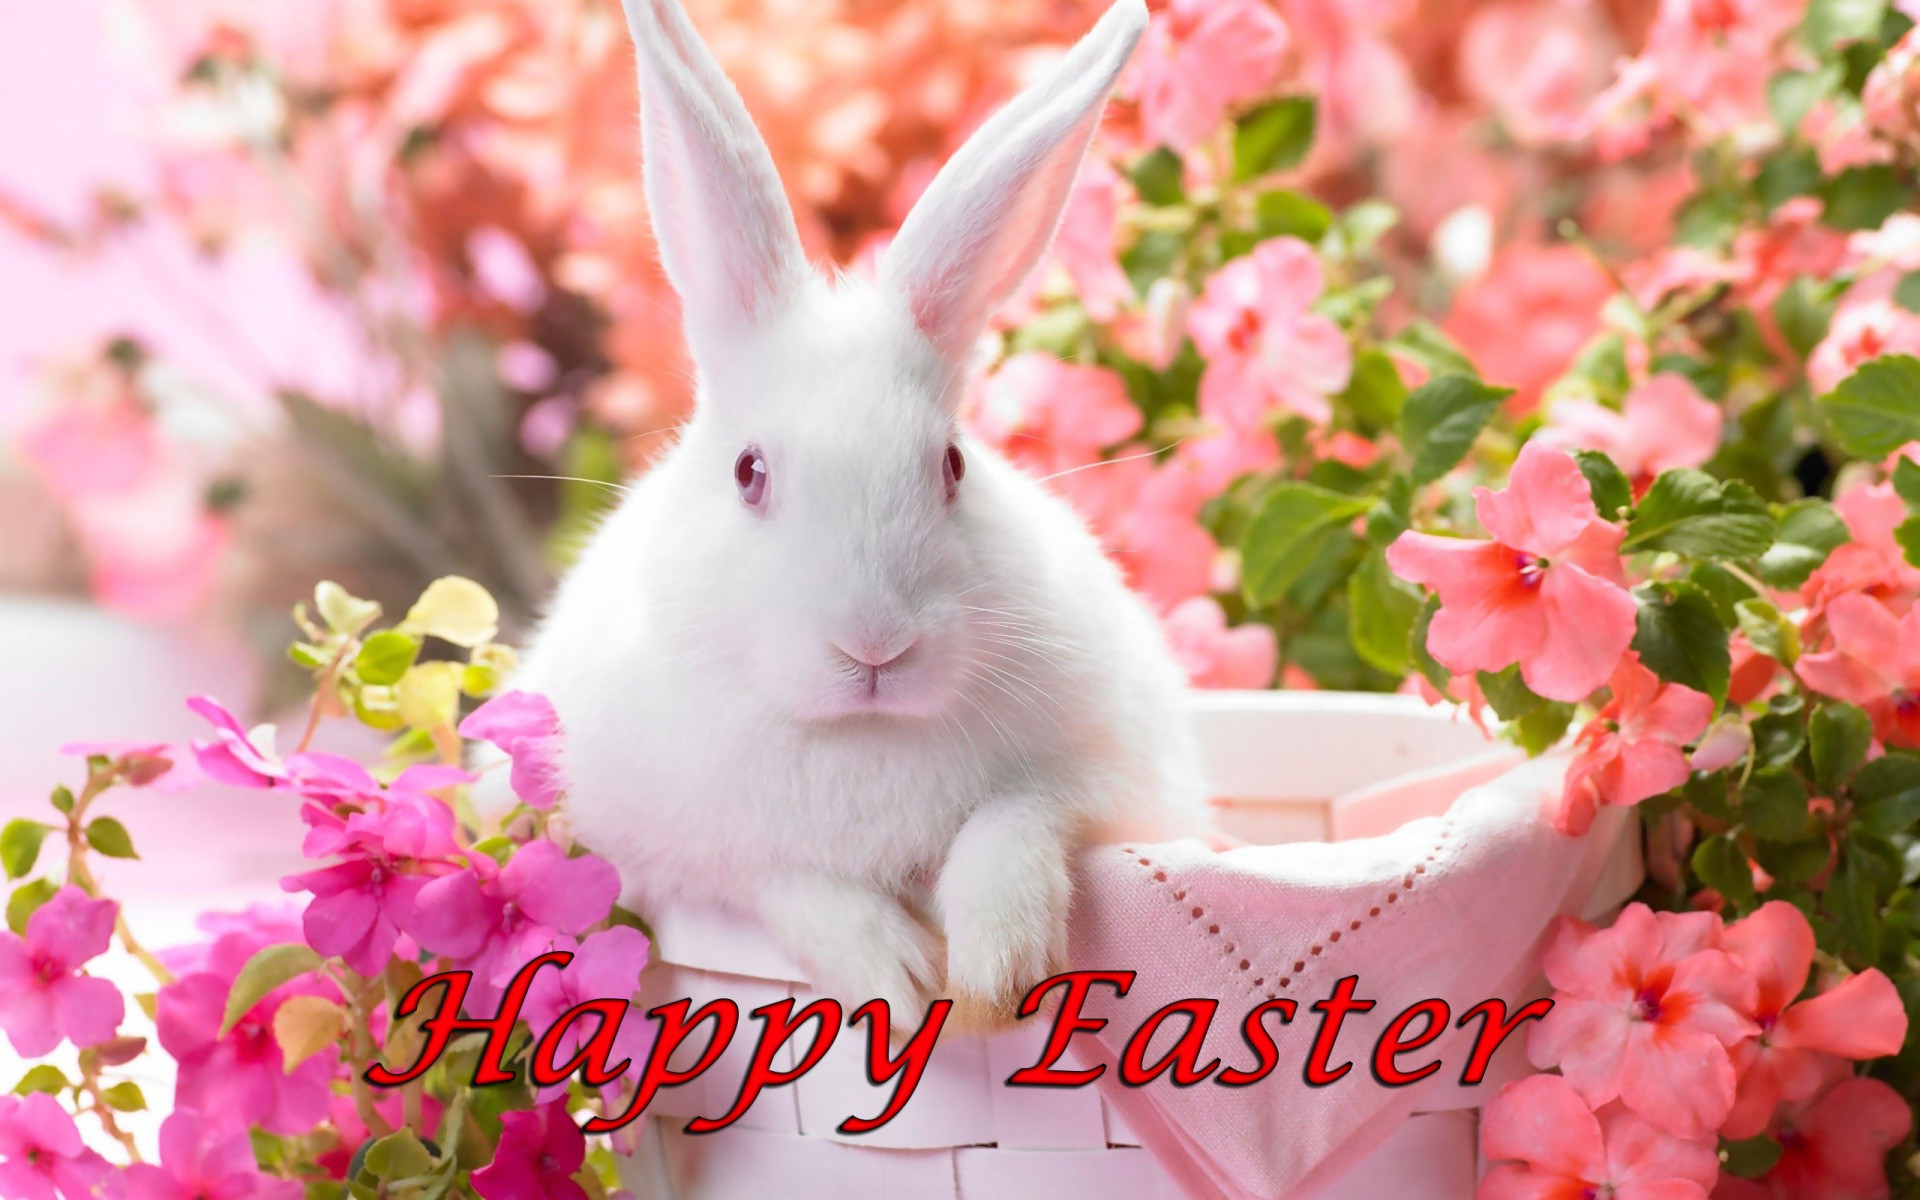 Happy Easter, White Bunny in Basket Surrounded by Flowers .